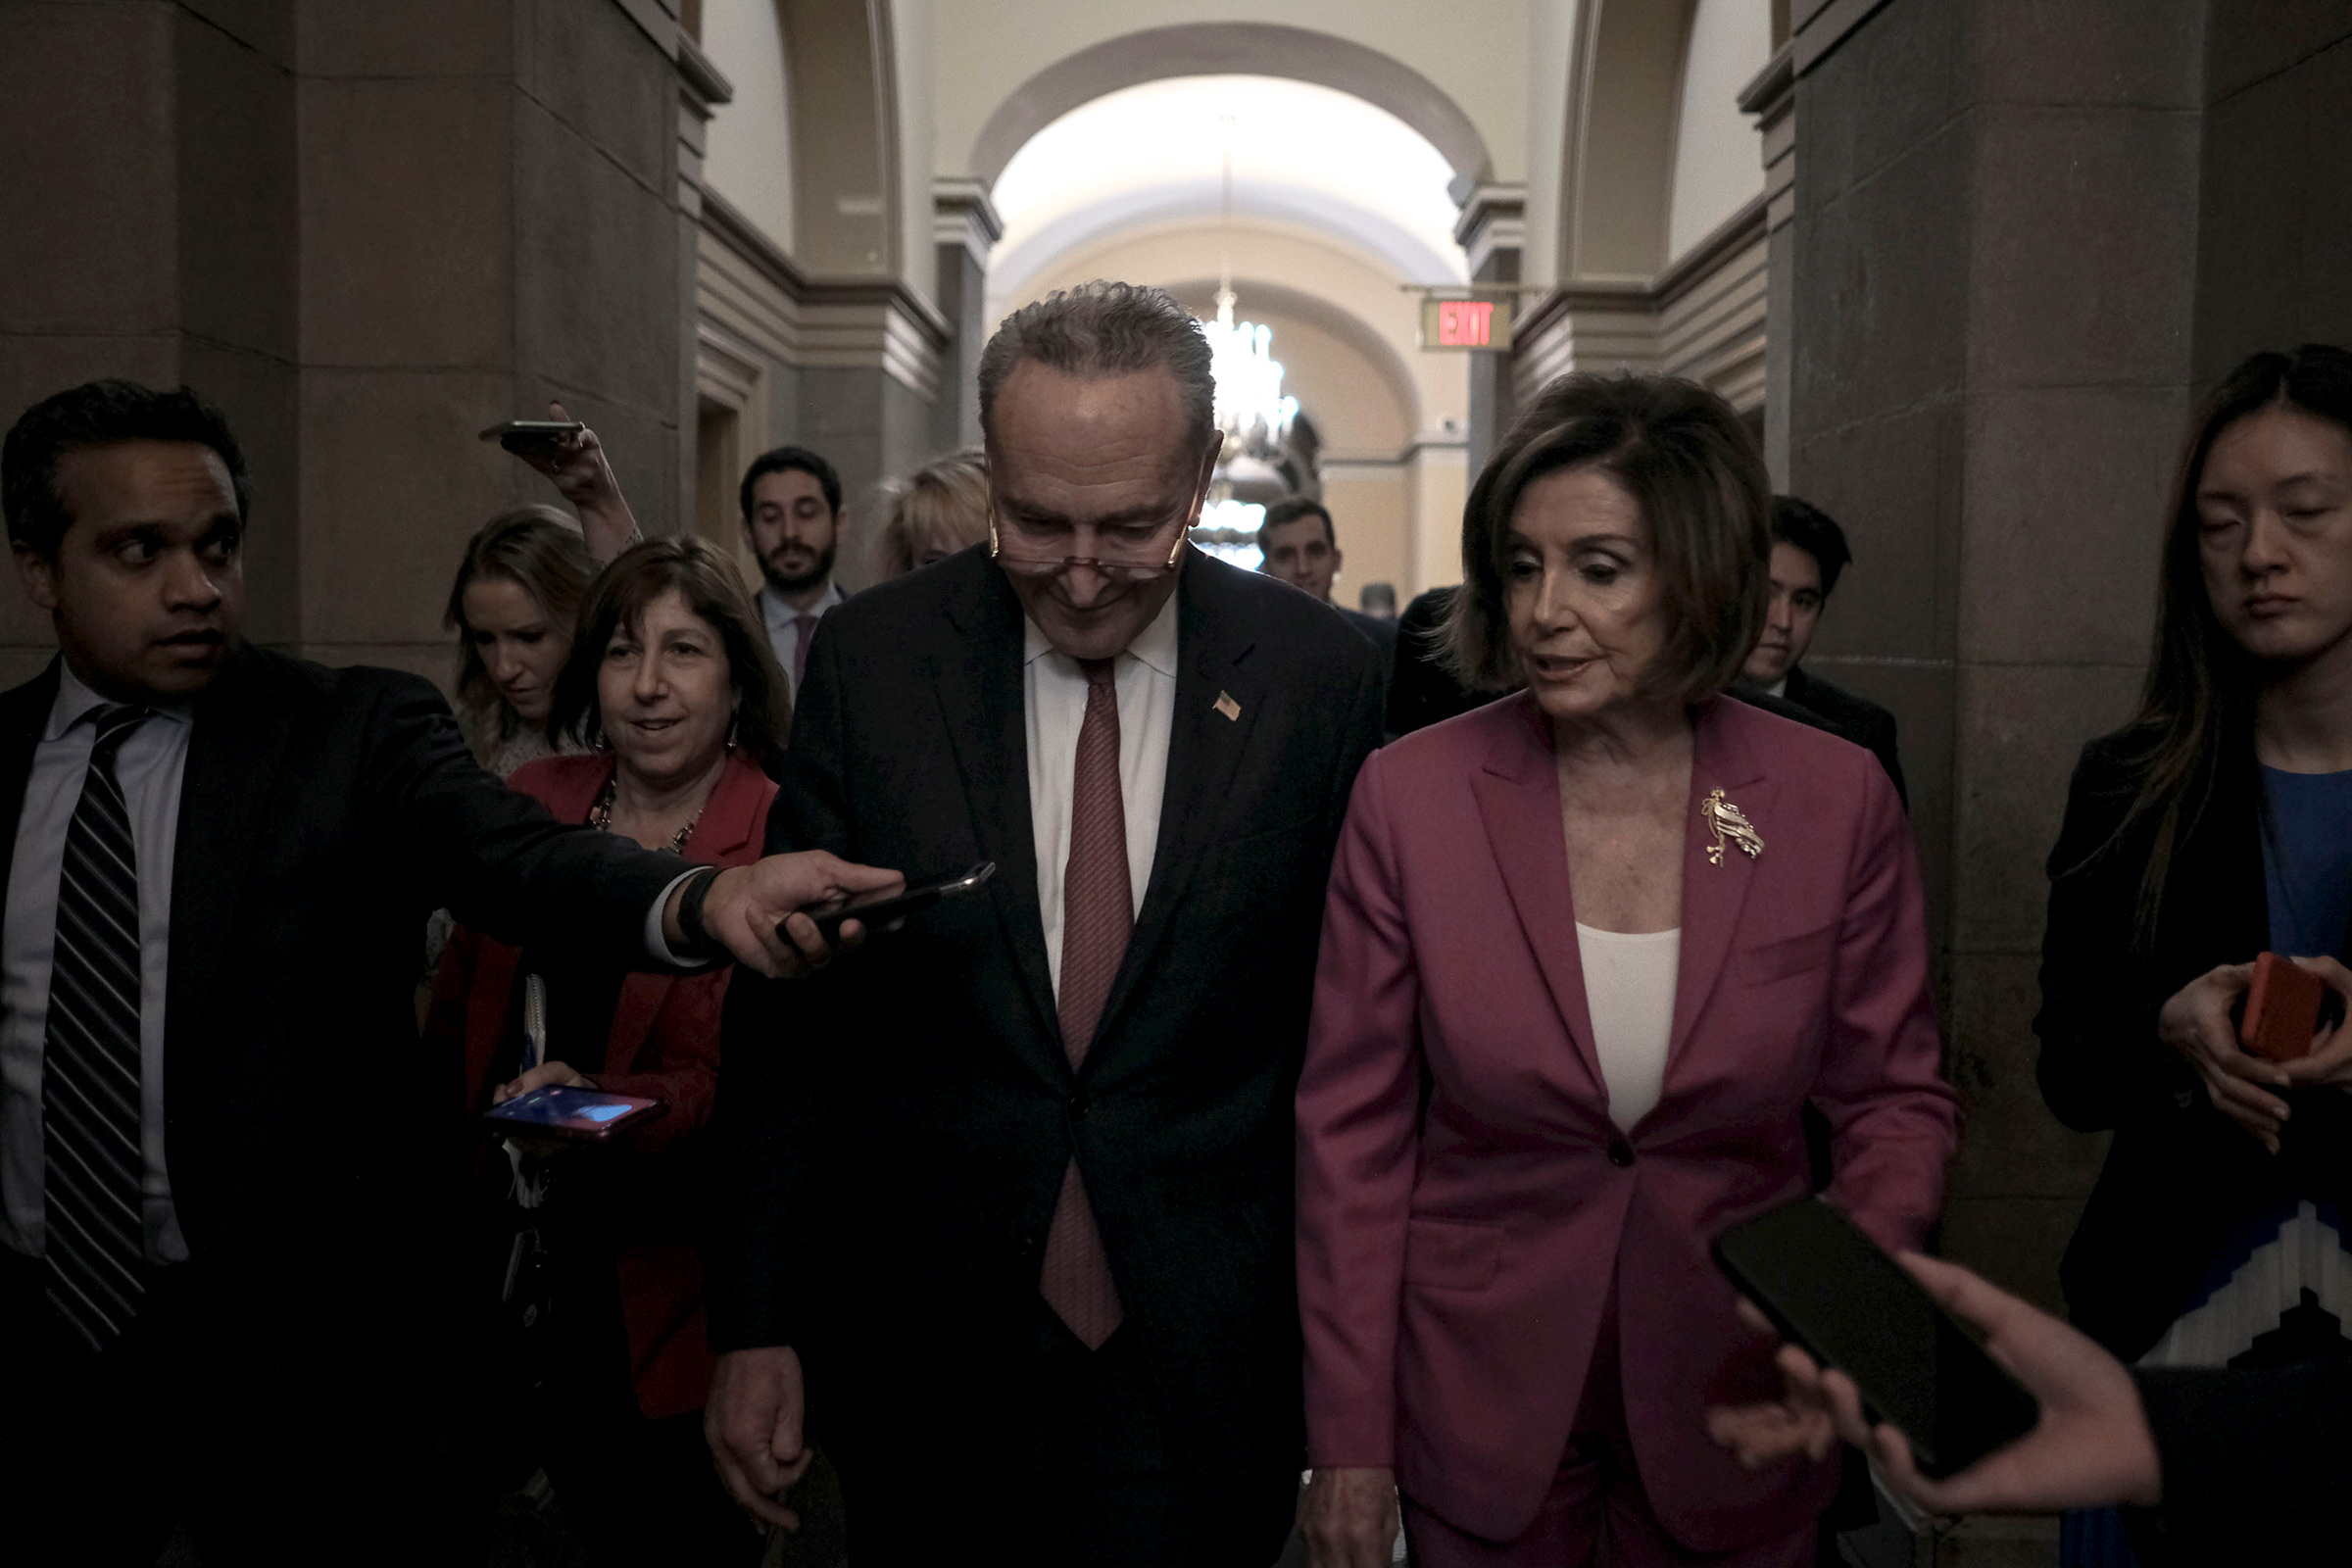 Senate Minority Leader Chuck Schumer and Speaker Nancy Pelosi leave a press conference on lowering the price for healthcare in anticipation to President Trump's State of the Union address at the Capitol in Washington, D.C., Feb. 4, 2020.